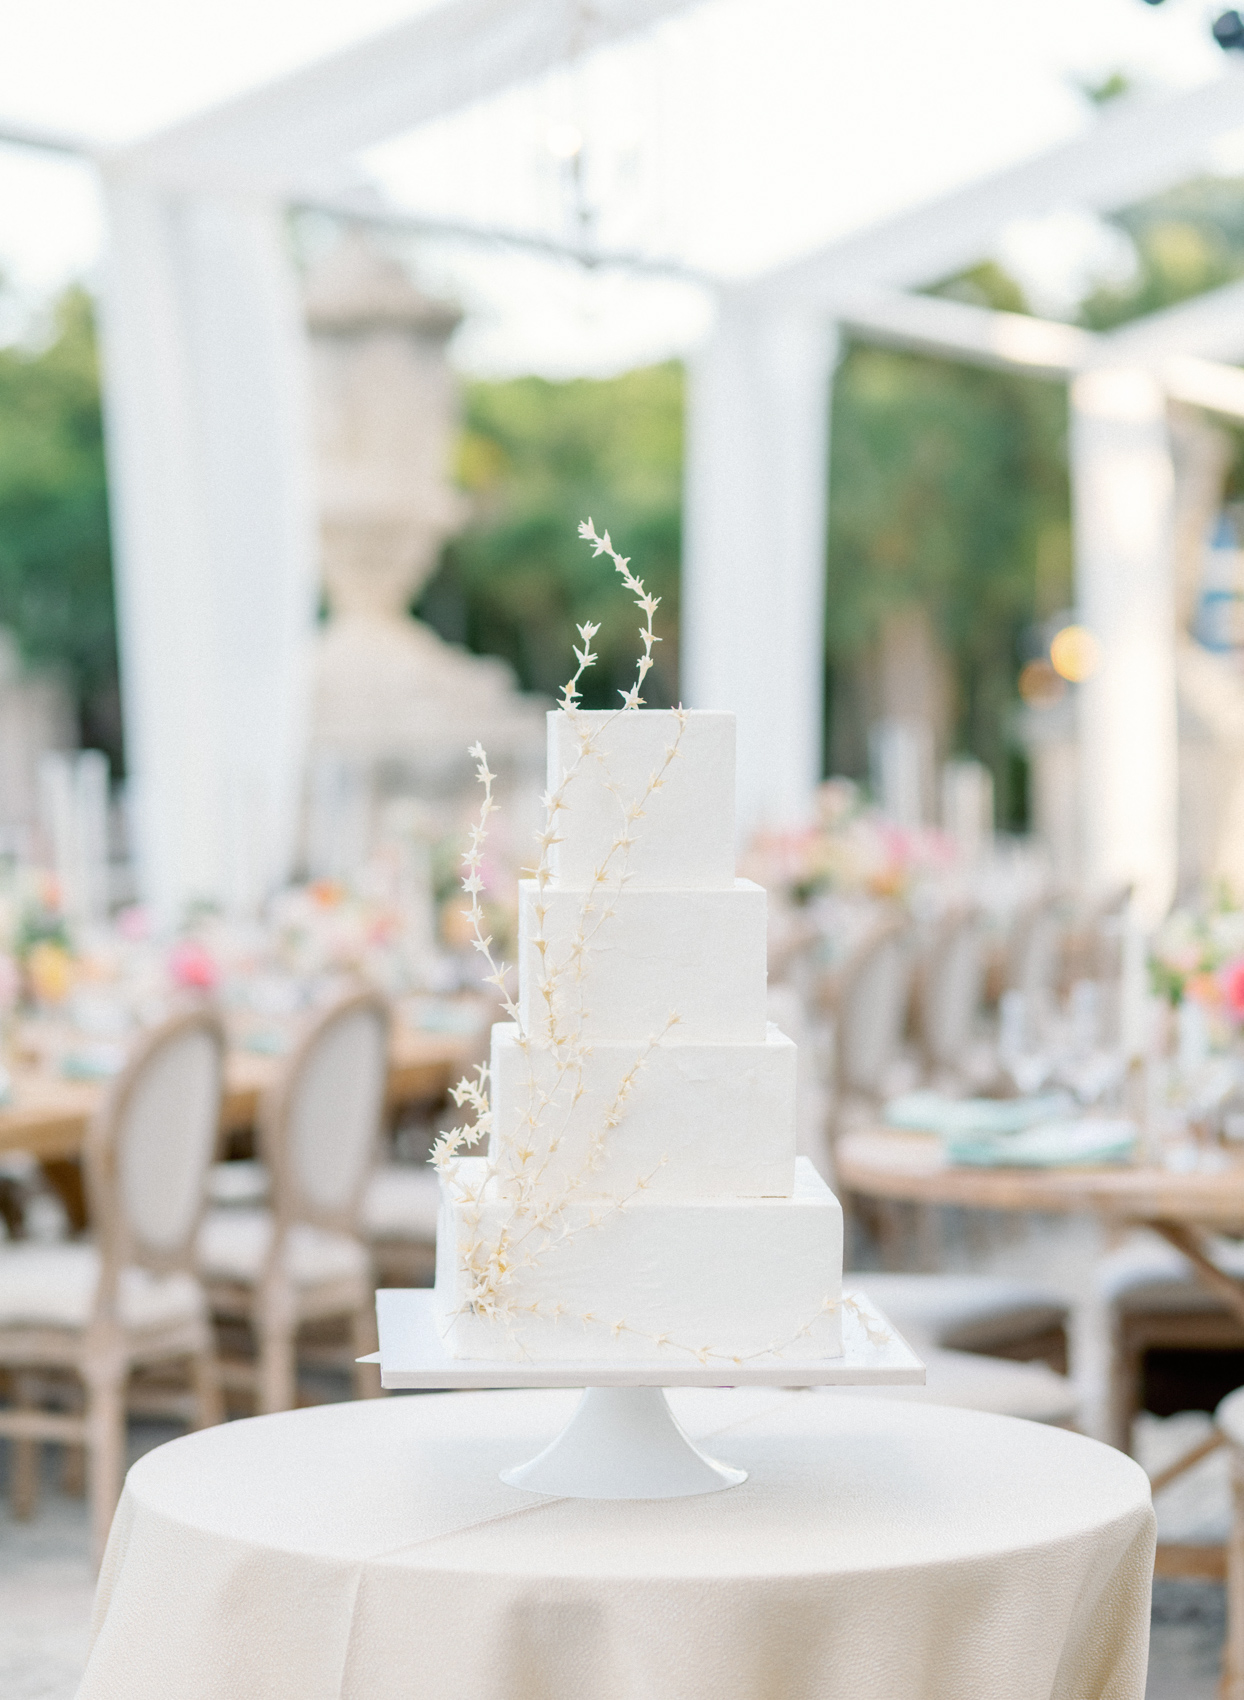 classic square tiered wedding cake